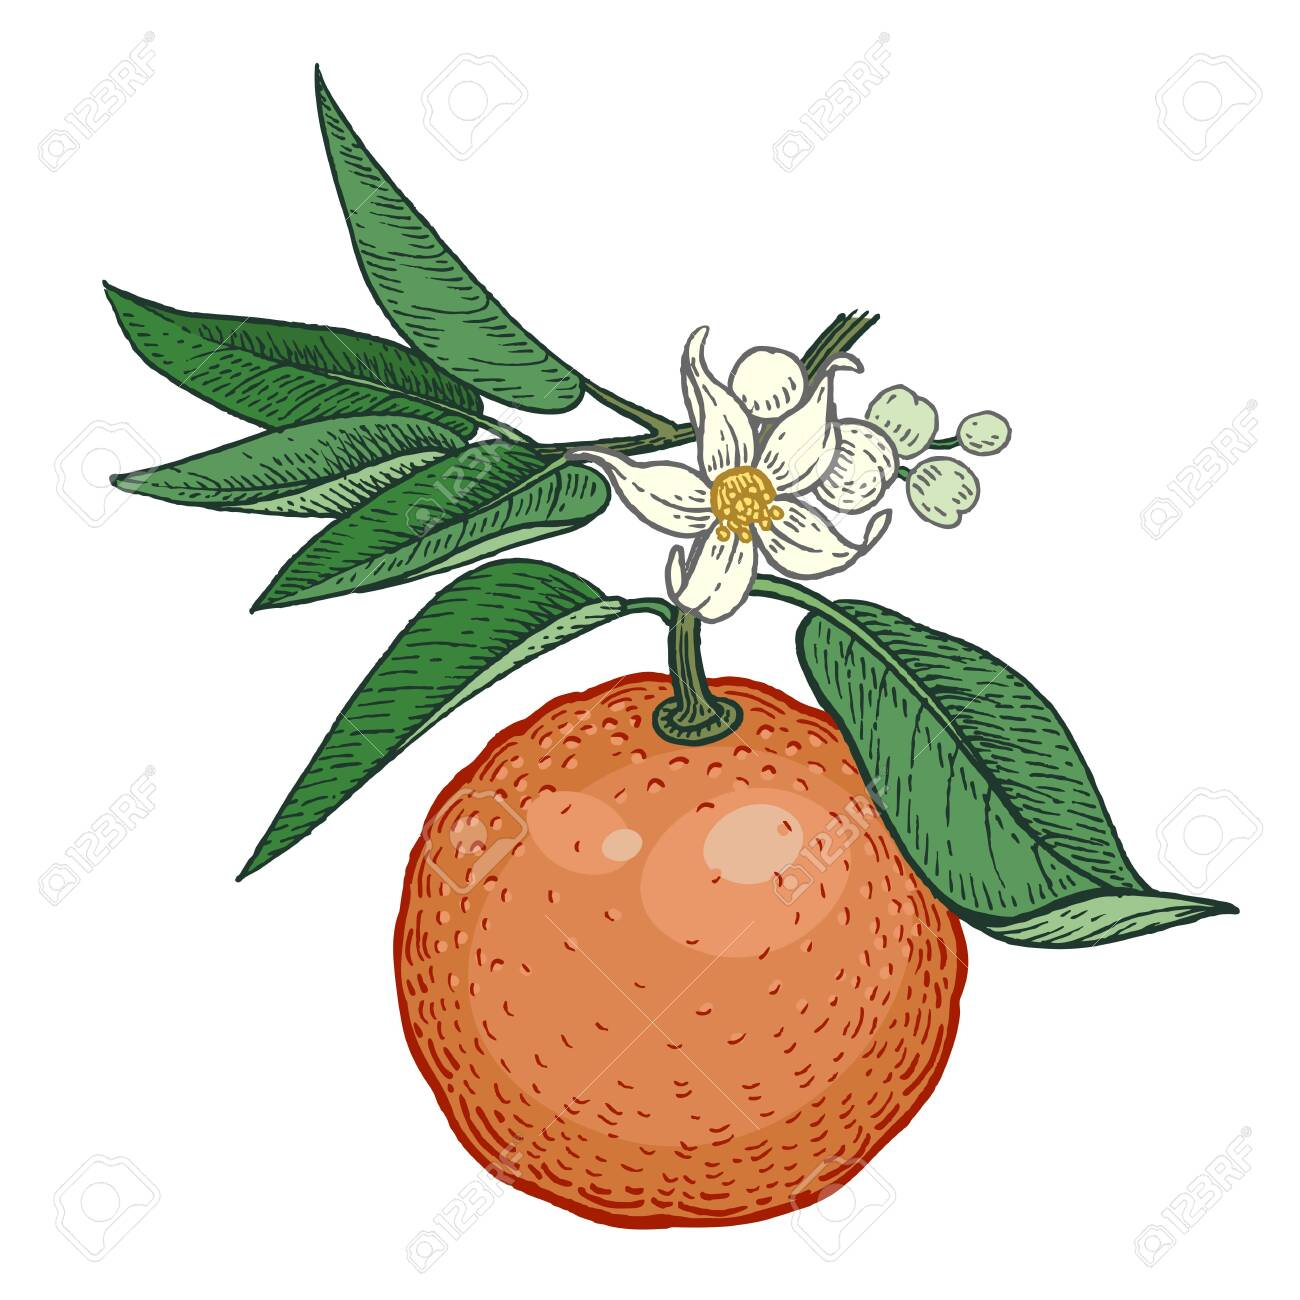 Tree Branch With Bitter Orange Fruits And Flowers Color Vector Royalty Free Cliparts Vectors And Stock Illustration Image 123592664